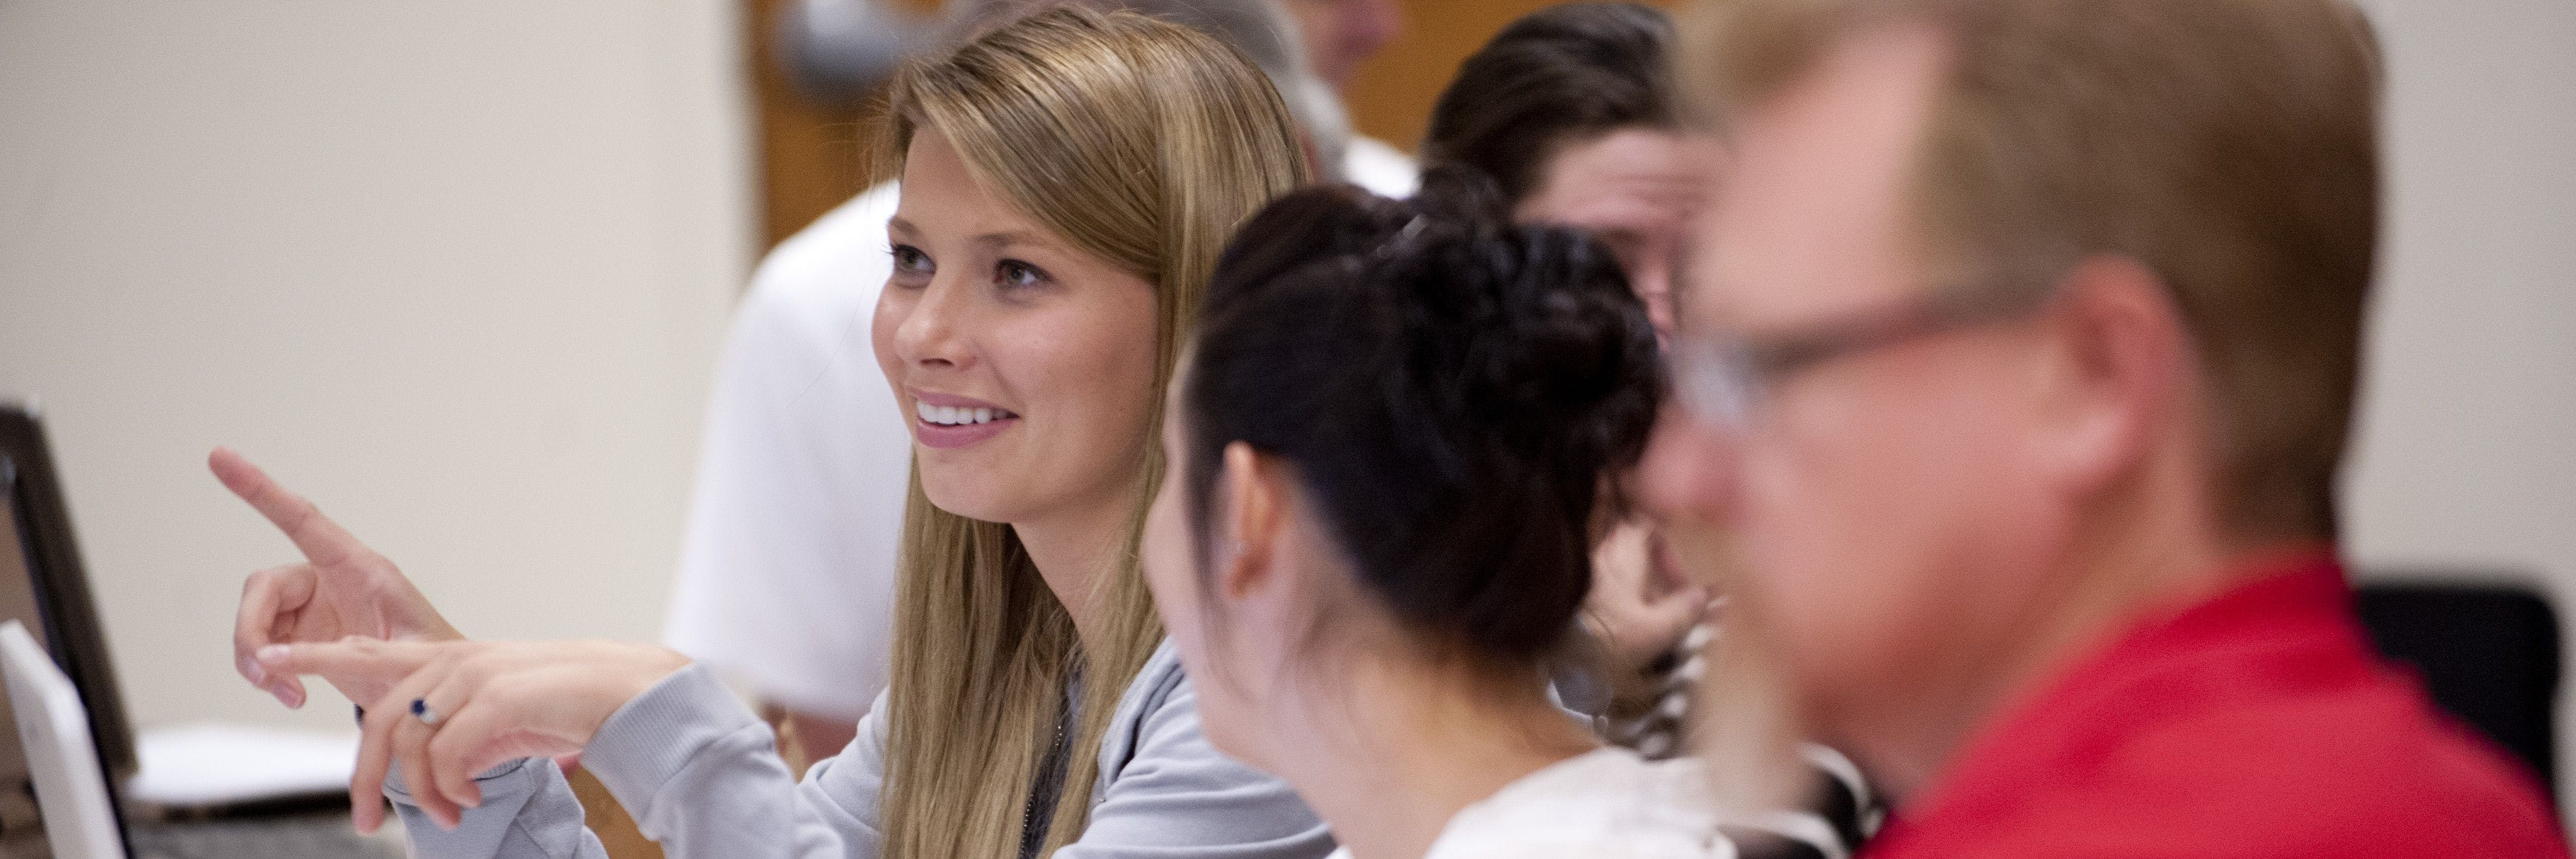 A student participates in class discussion.